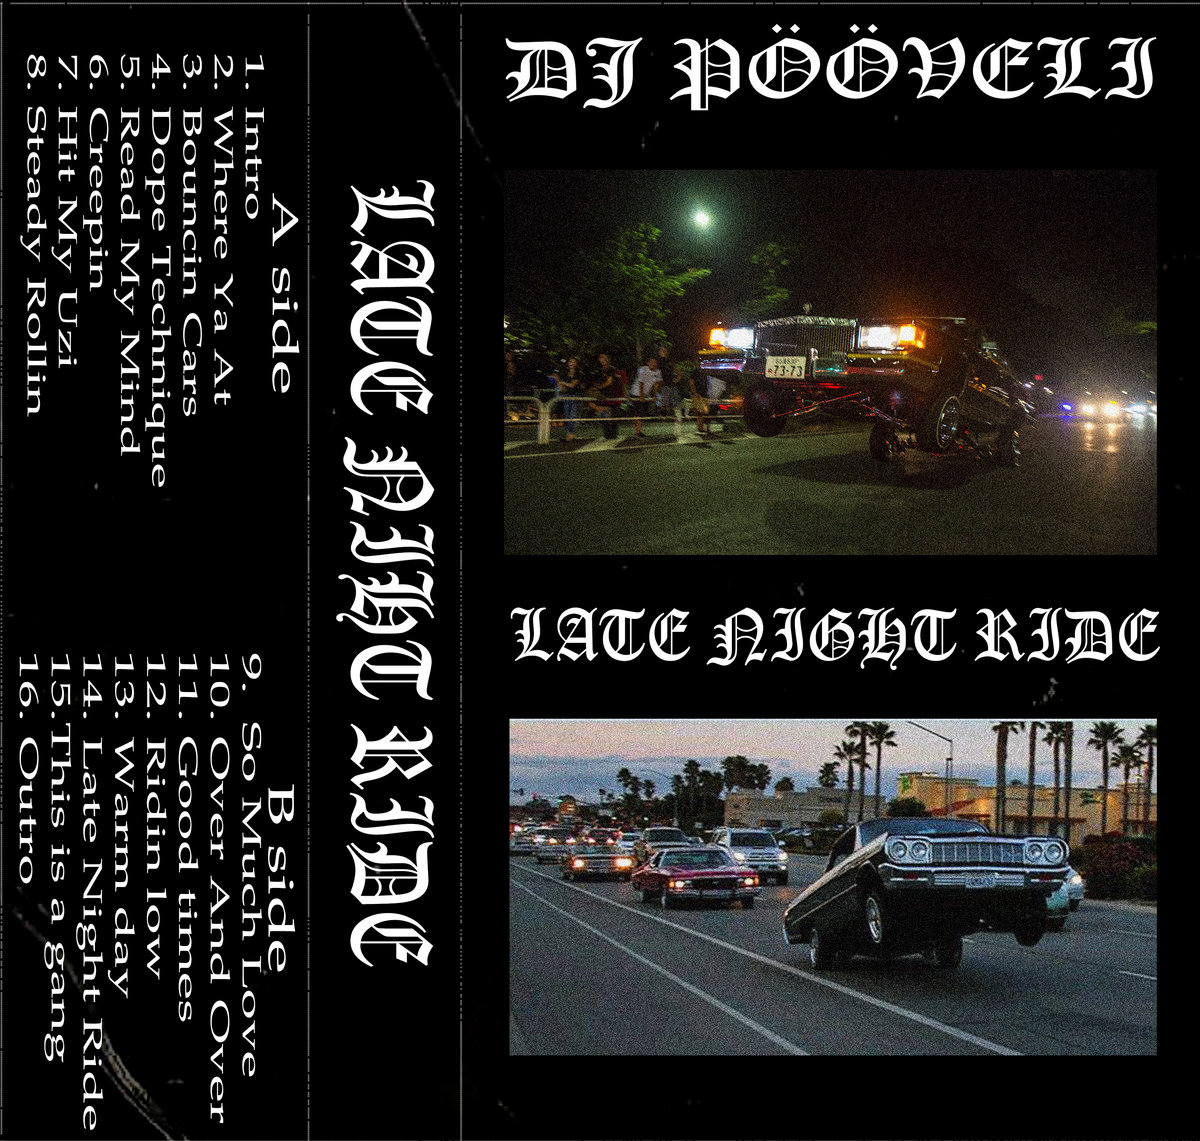 dj pooveli late night ride